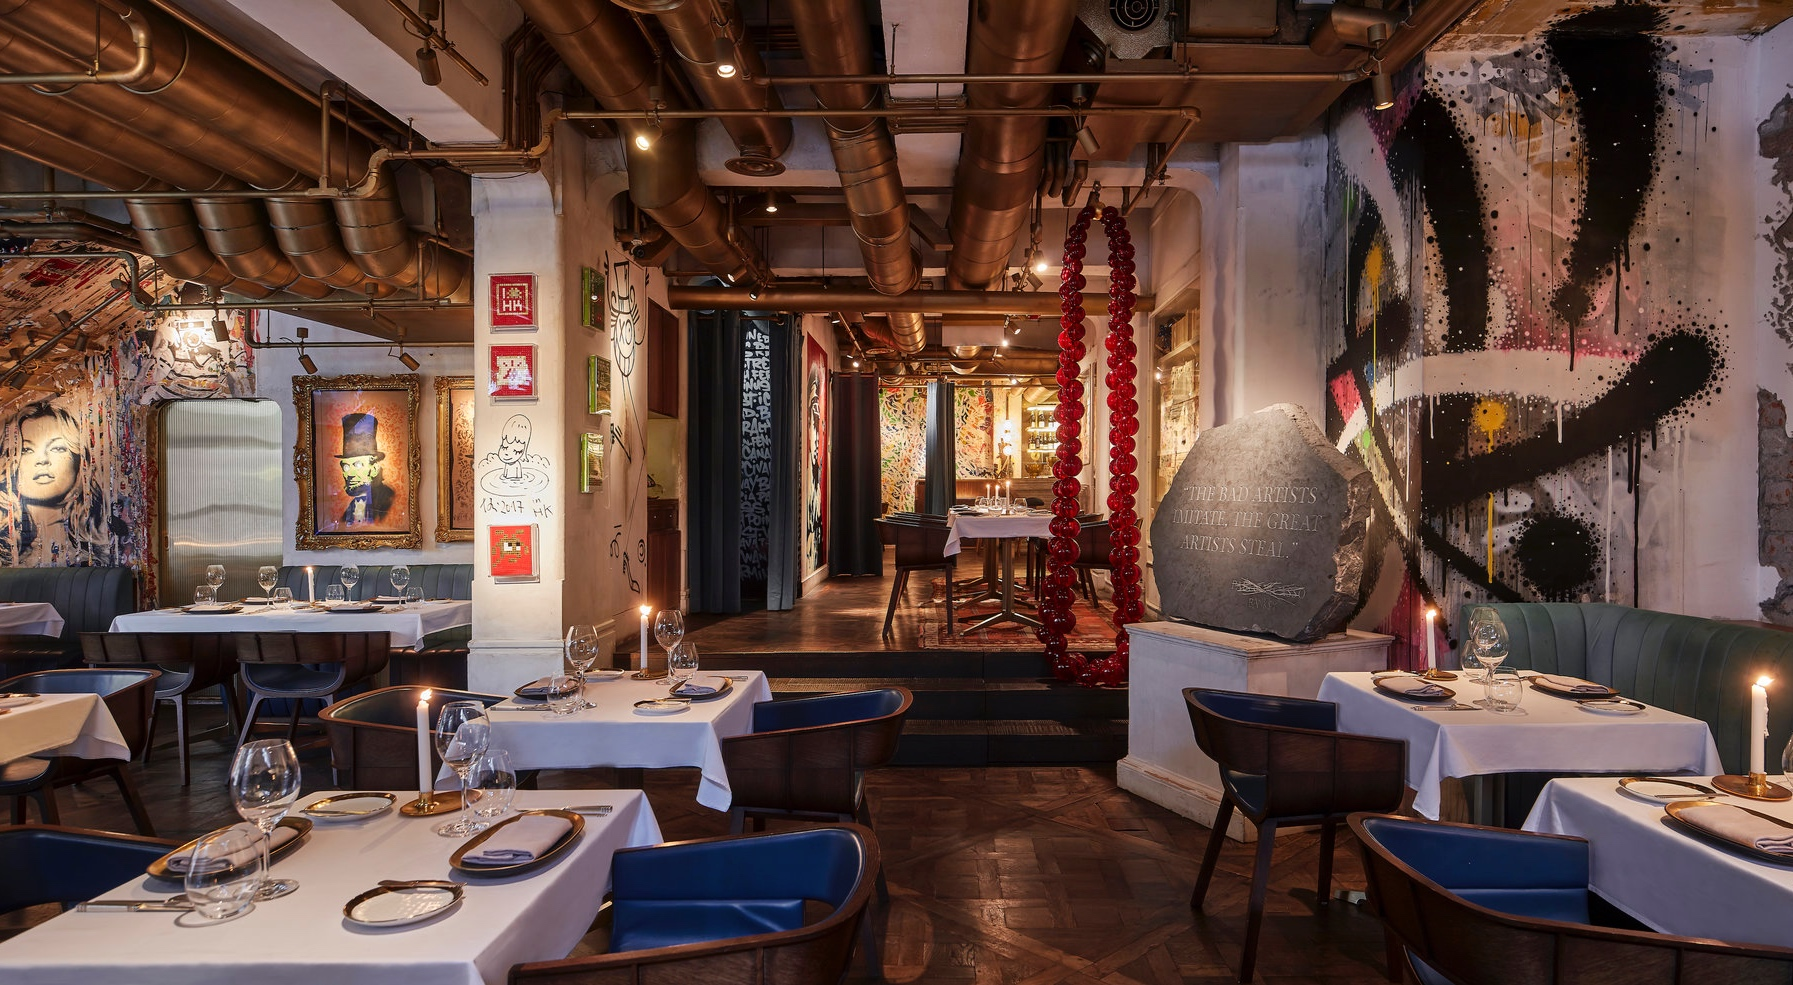 Bibo - Bibo is the embodiment of understated luxury.A space where fine dining meets street art: a dynamic,ground breaking realizatdion of art in all forms, providing guestswith an extravagant French gastronomic journey.Events Capacity60 seats / 120 standing guestsPrivate Dining Room for up to 8 guestsOutside catering is available from Bibo restaurantG/F, 163 Hollywood Road, Sheung Wan, Hong Kong